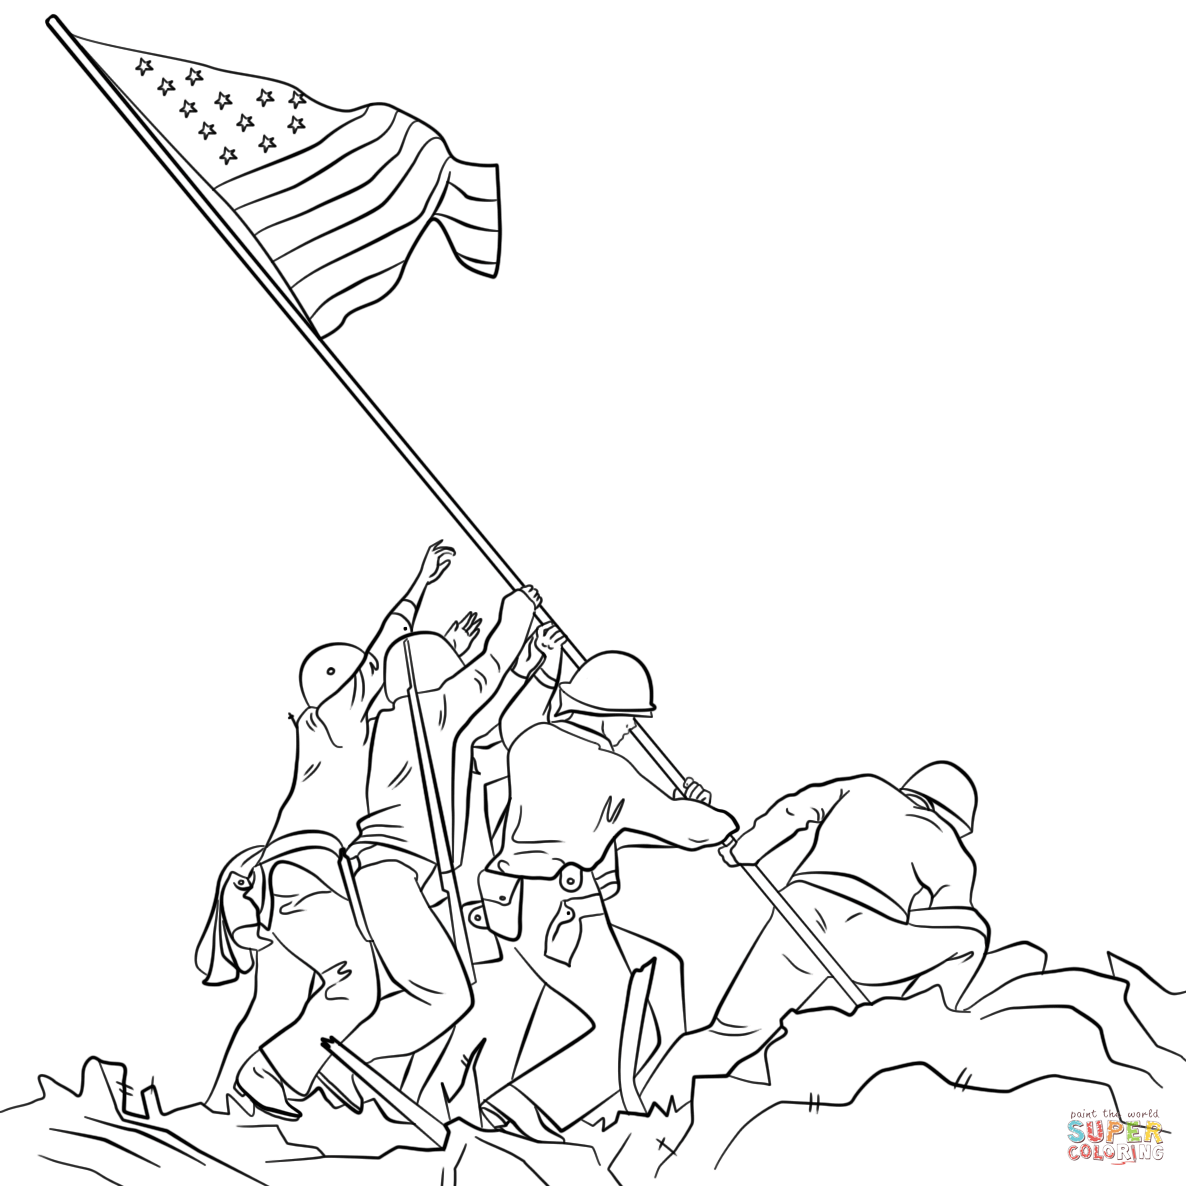 Sol Rs Putting Flag Up Drawing Clipart 20 Free Cliparts